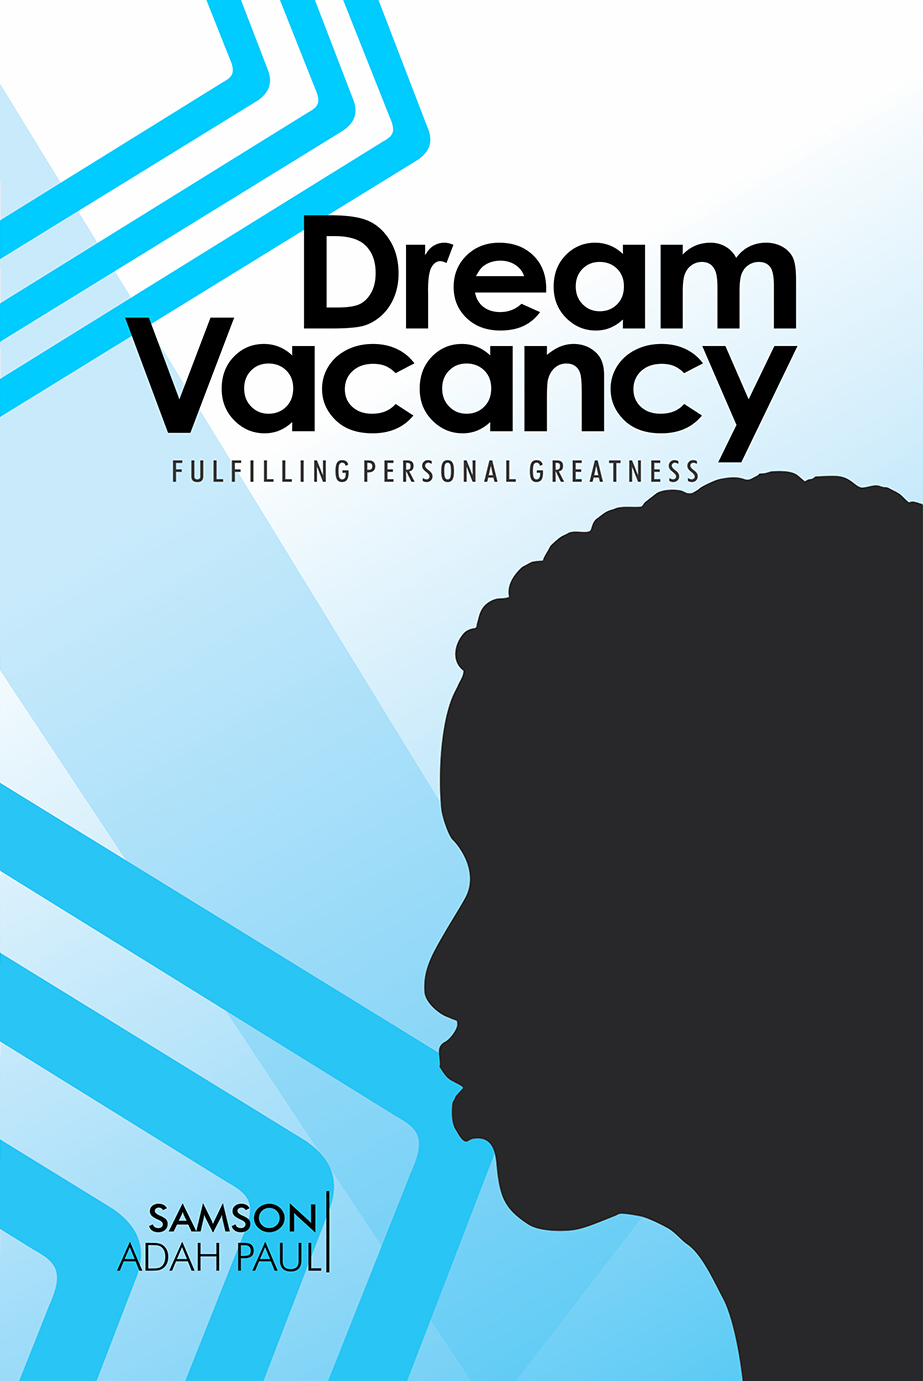 //samsonadahpaul.com/wp-content/uploads/2017/08/102-Dream-Vacancy-new.jpg